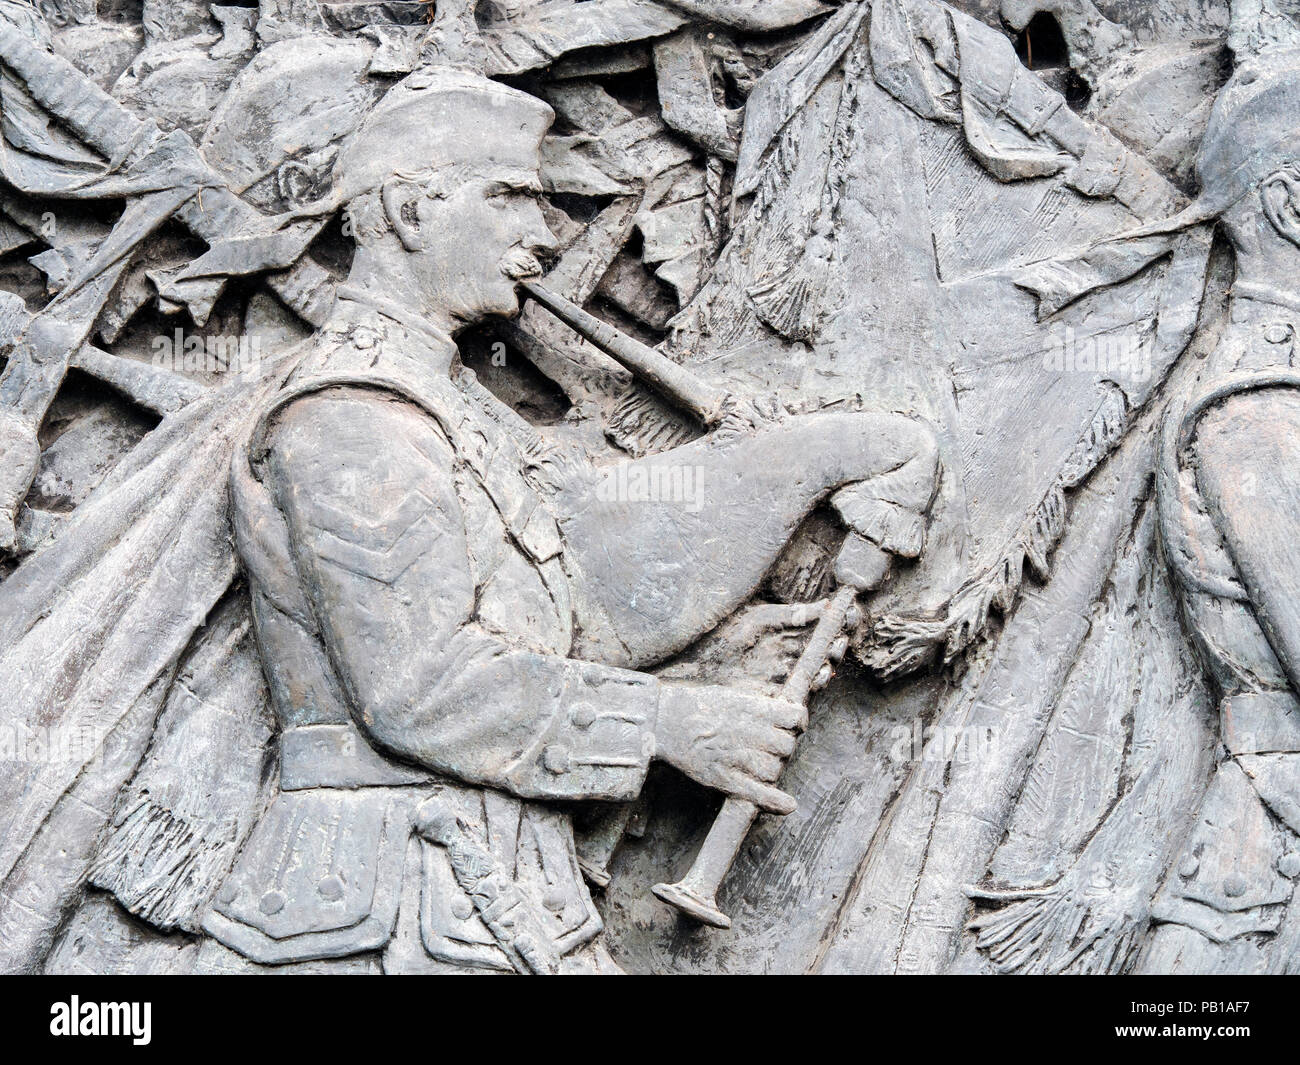 A detail of the Scottish American Memorial in Princes Street Gardens, Edinburgh, Scotland, United Kingdom, showing a kilted bag piper. Stock Photo